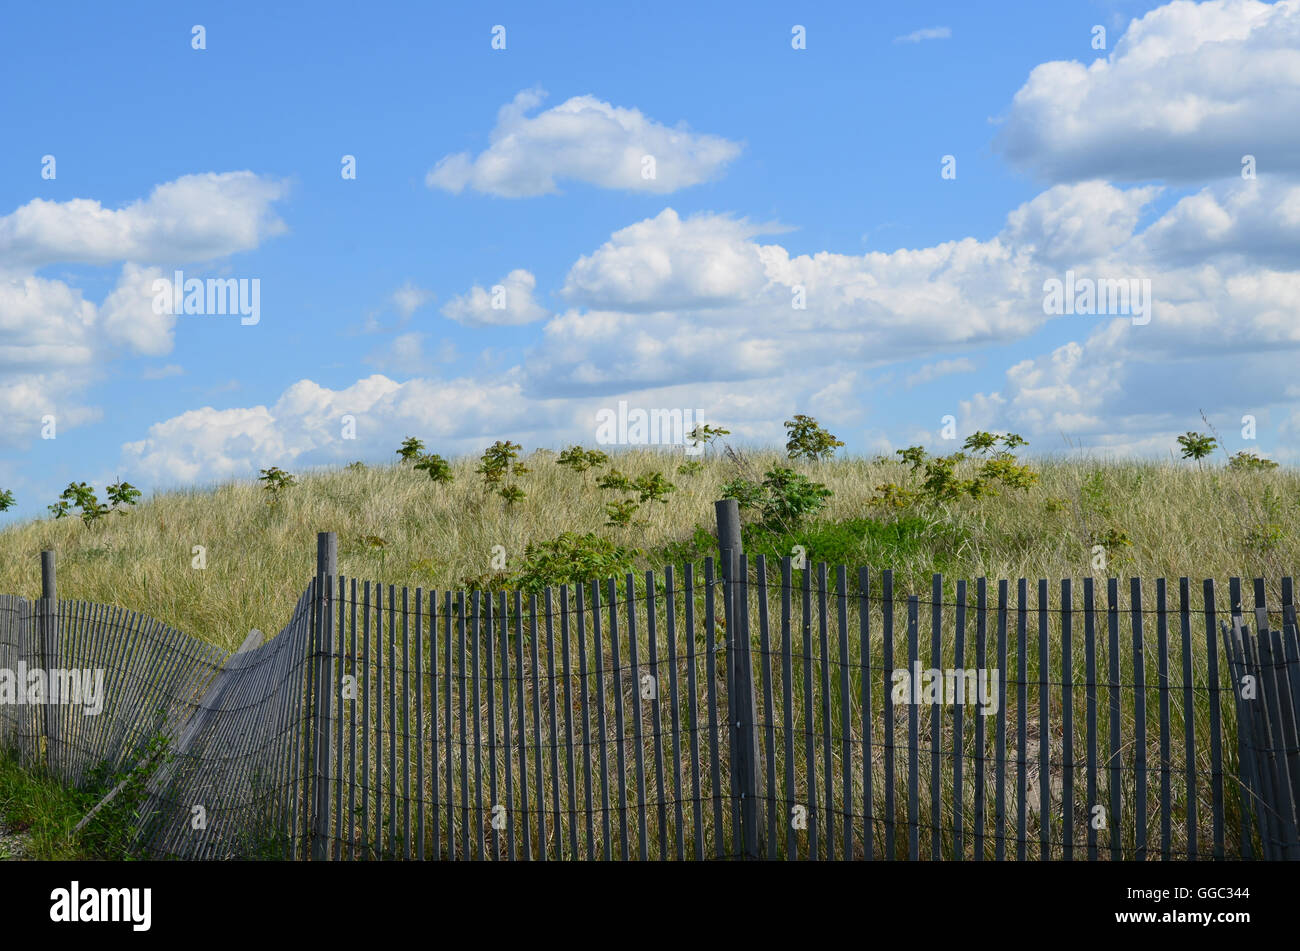 Wooden fencing around dunes and tall grass on Spectacle Island. - Stock Image